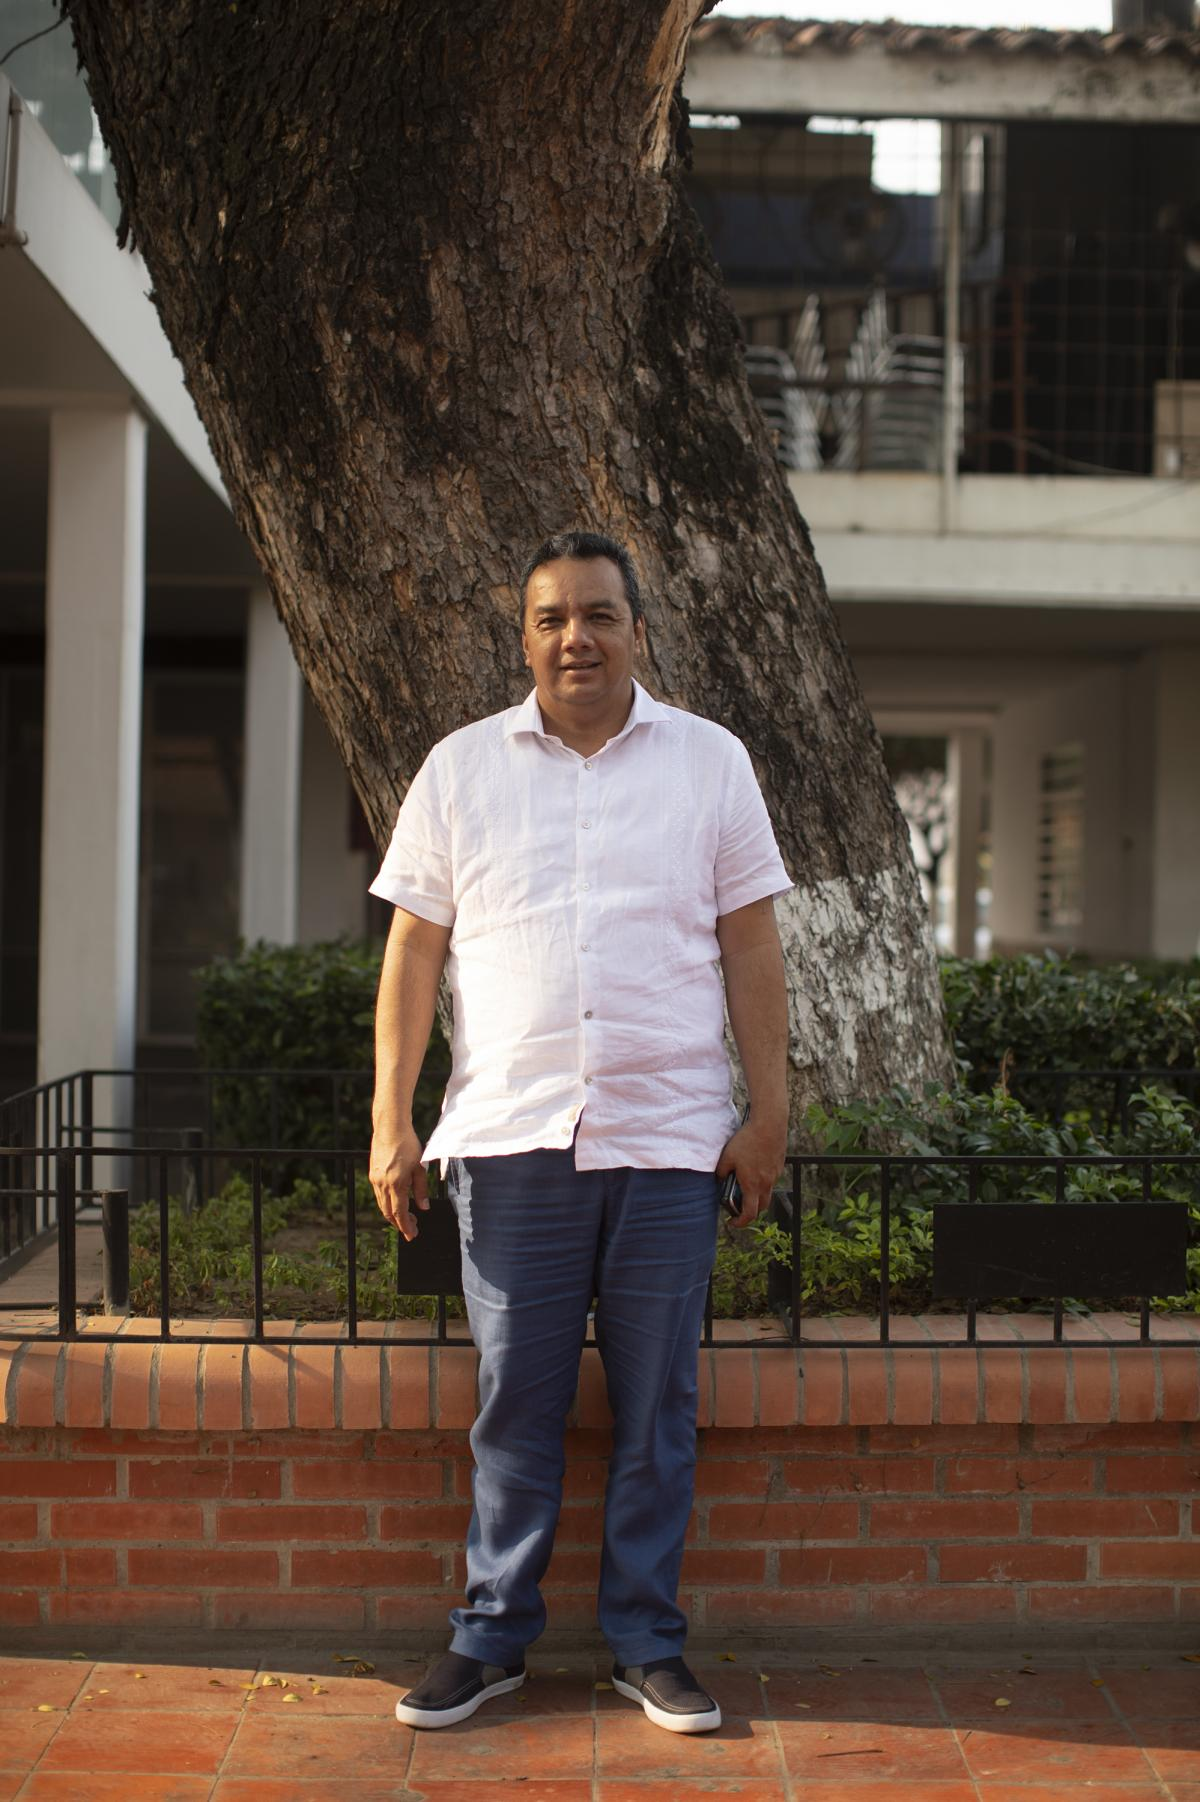 Pepe Ruíz Paredes, mayor of the Colombian town of Villa del Rosario, said local authorities have tried to swiftly suppress outbreaks of violence at protests along the border.